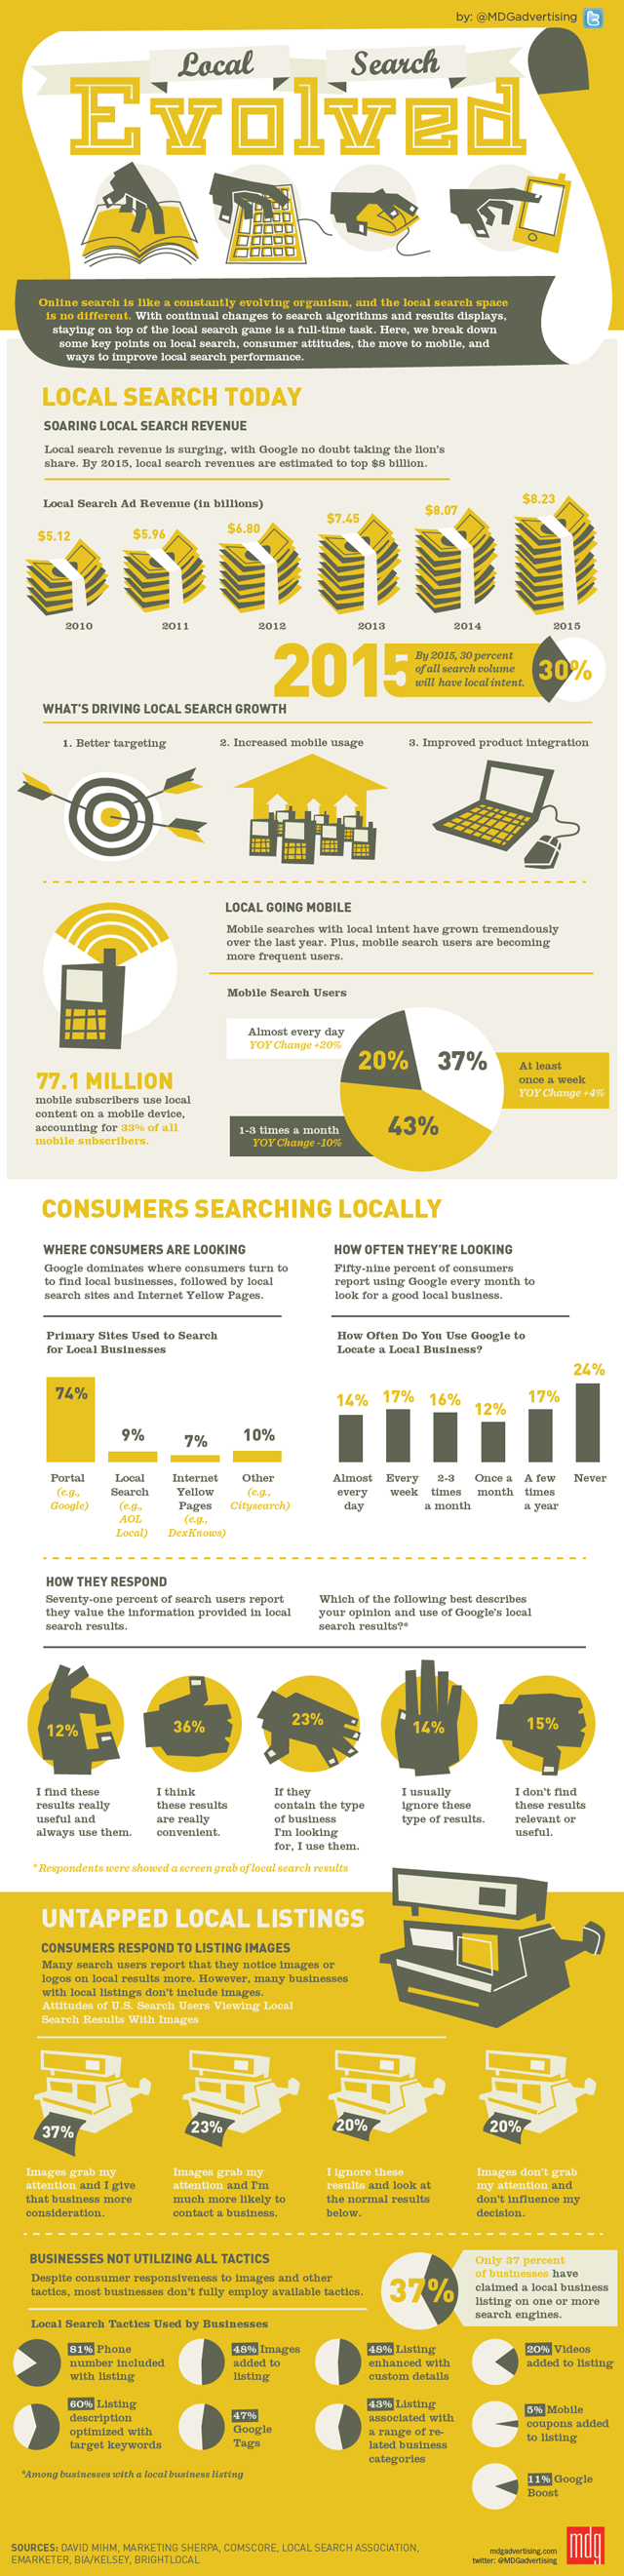 Infographic_Local_Search_Evolved_mdg_advertising